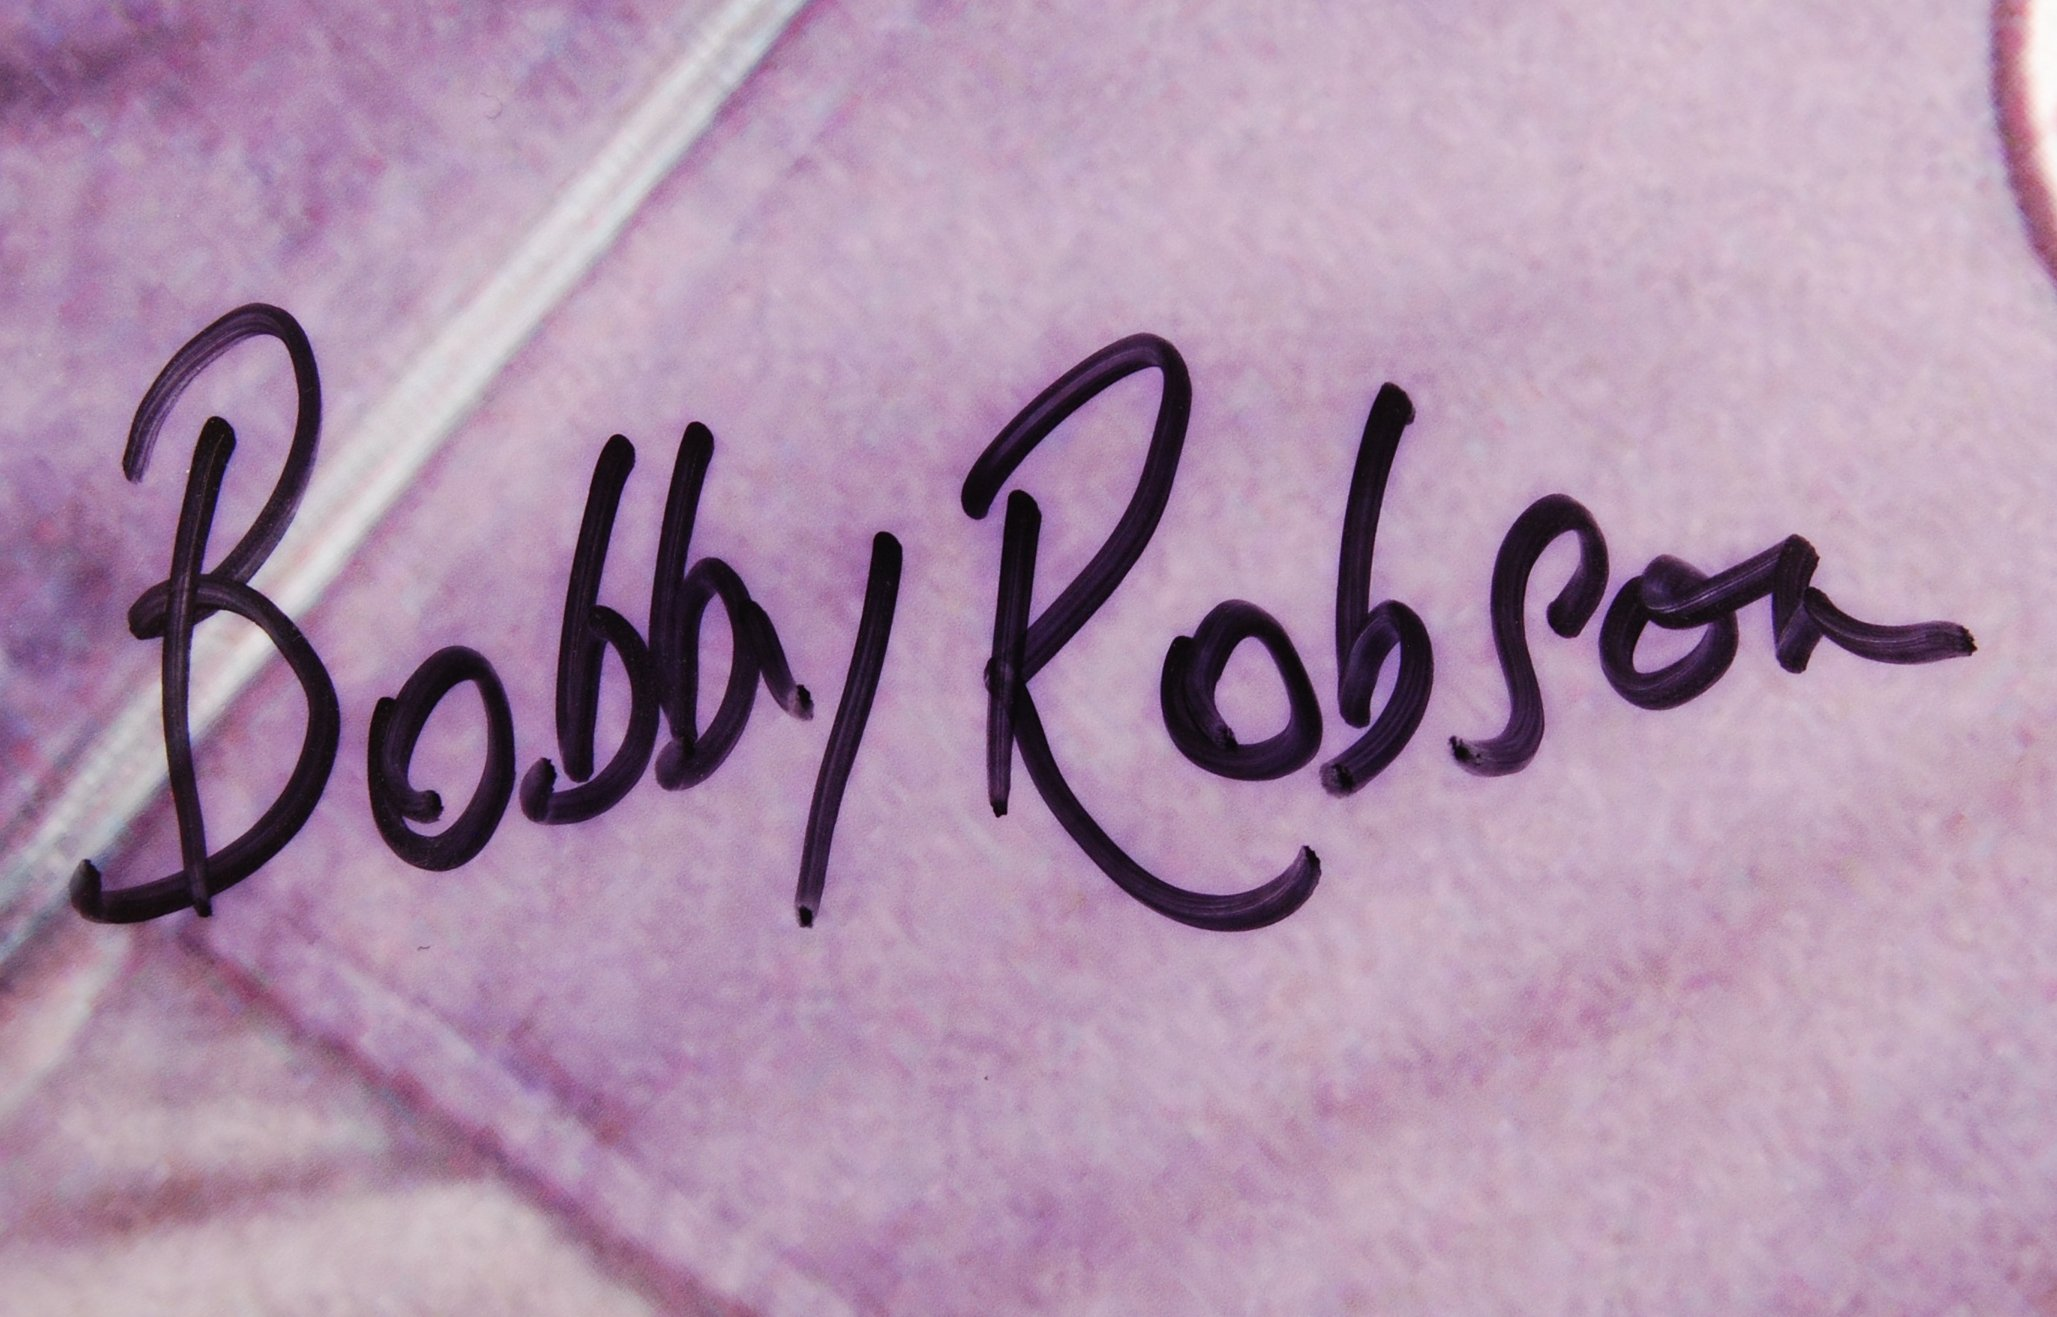 SIR BOBBY ROBSON - FOOTBALL MANAGER - LARGE AUTOGR - Image 2 of 5